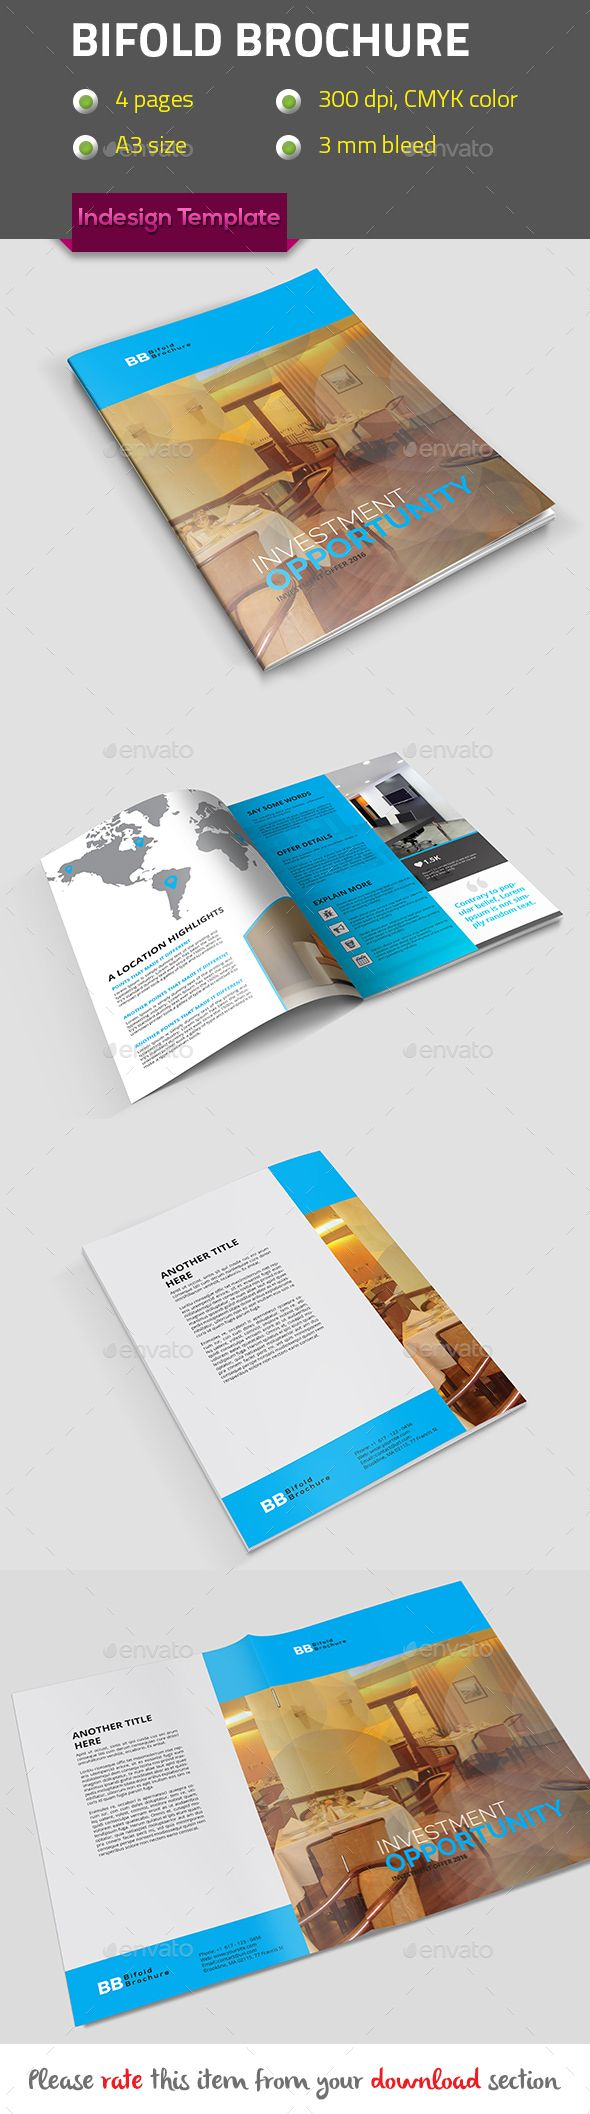 Best Bifold Brochure Templates Designs Images On Pinterest - Bi fold brochure template indesign